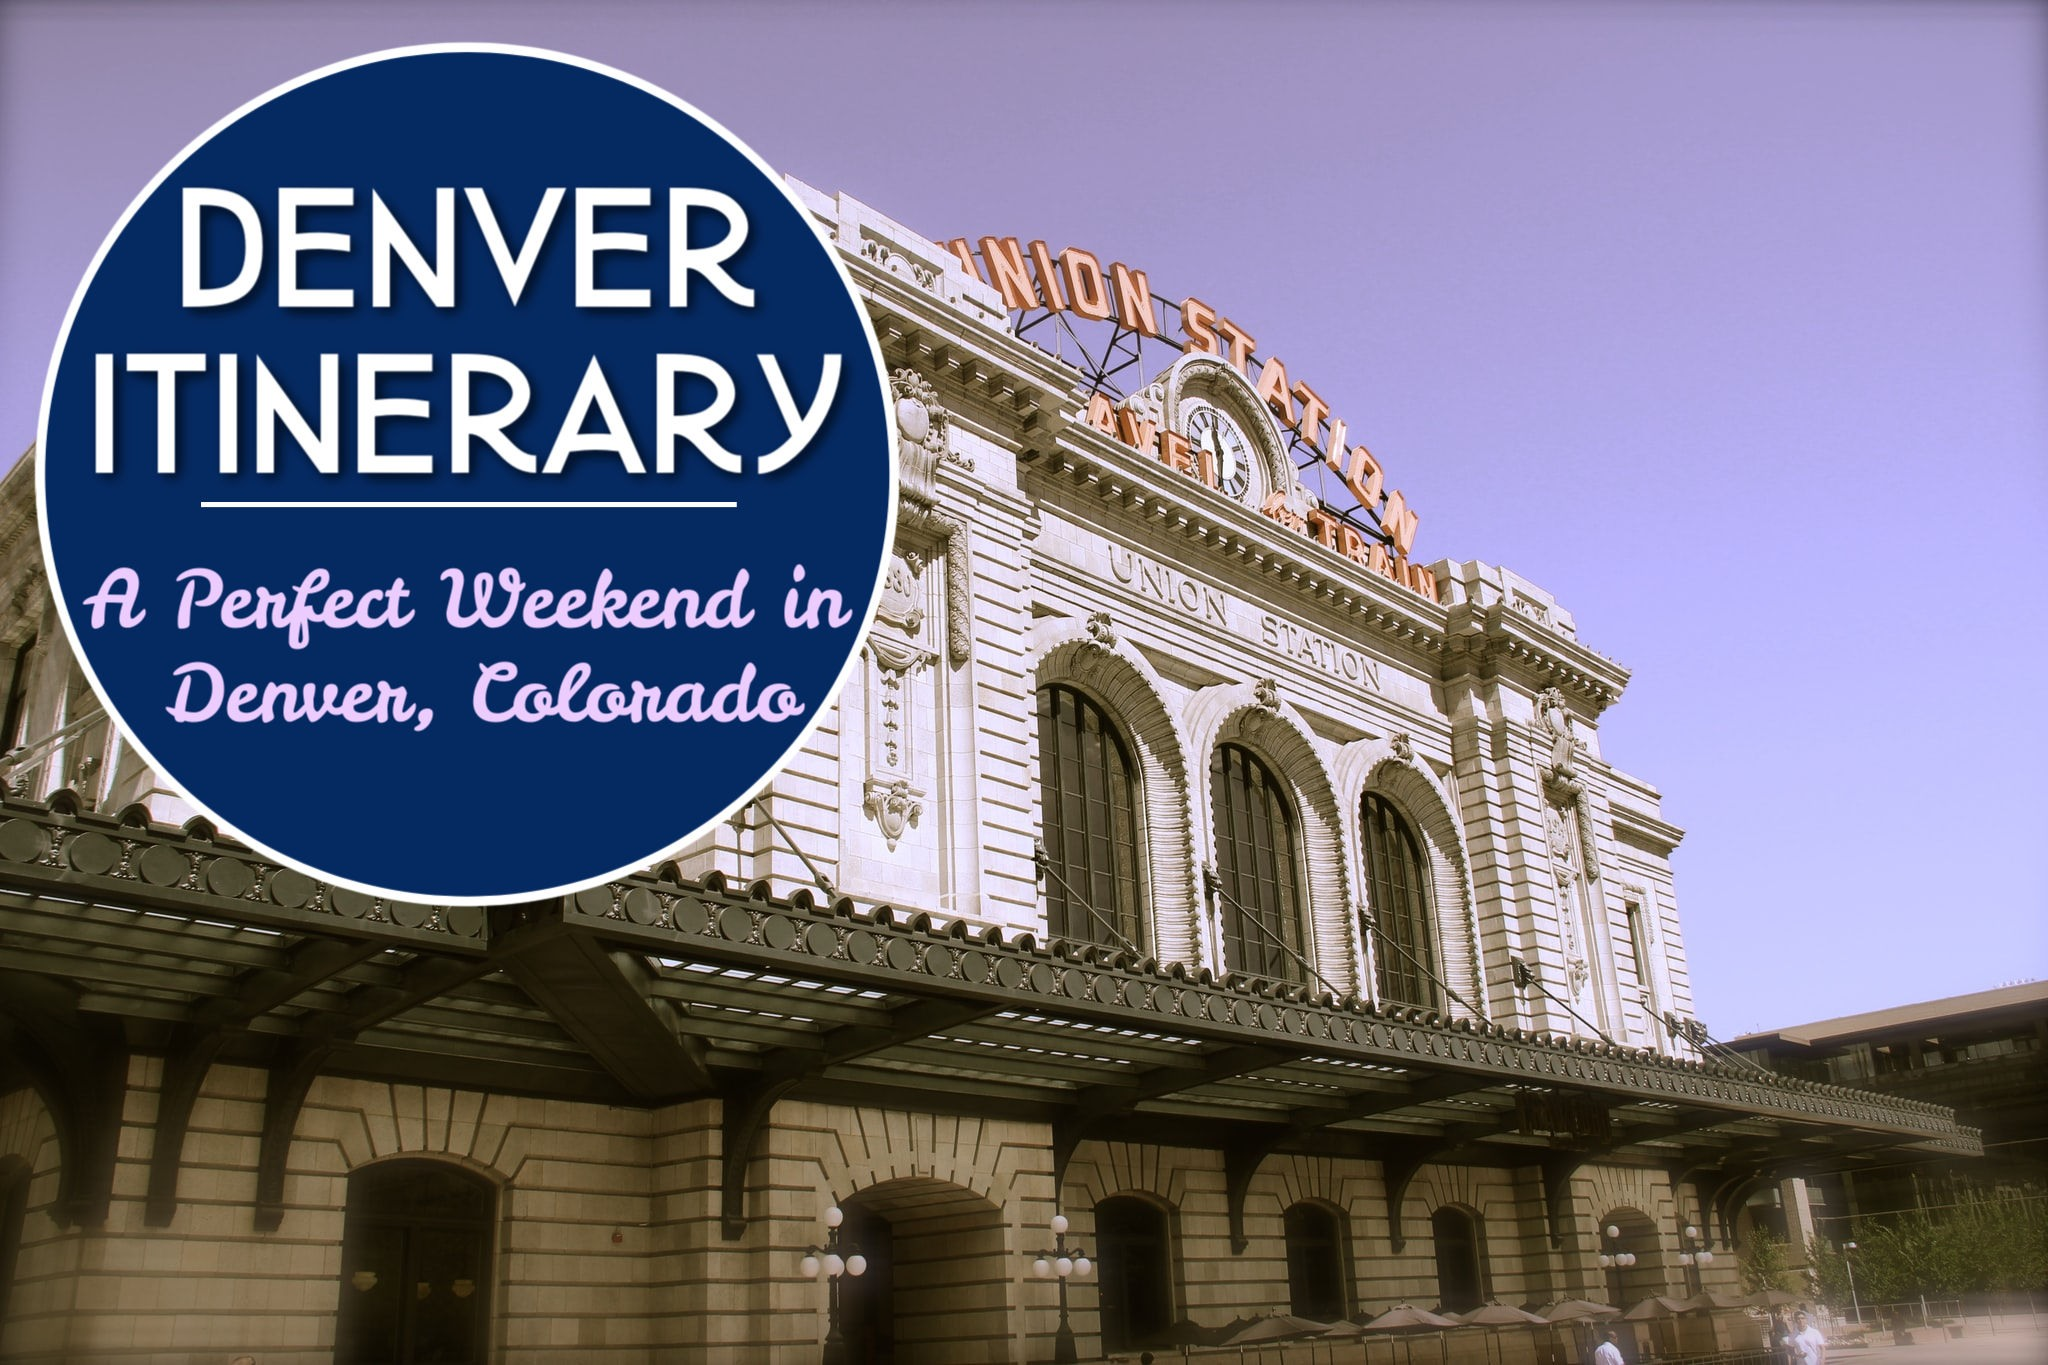 Denver Itinerary A Perfect Weekend in Denver, Colorado by JetSettingFools.com